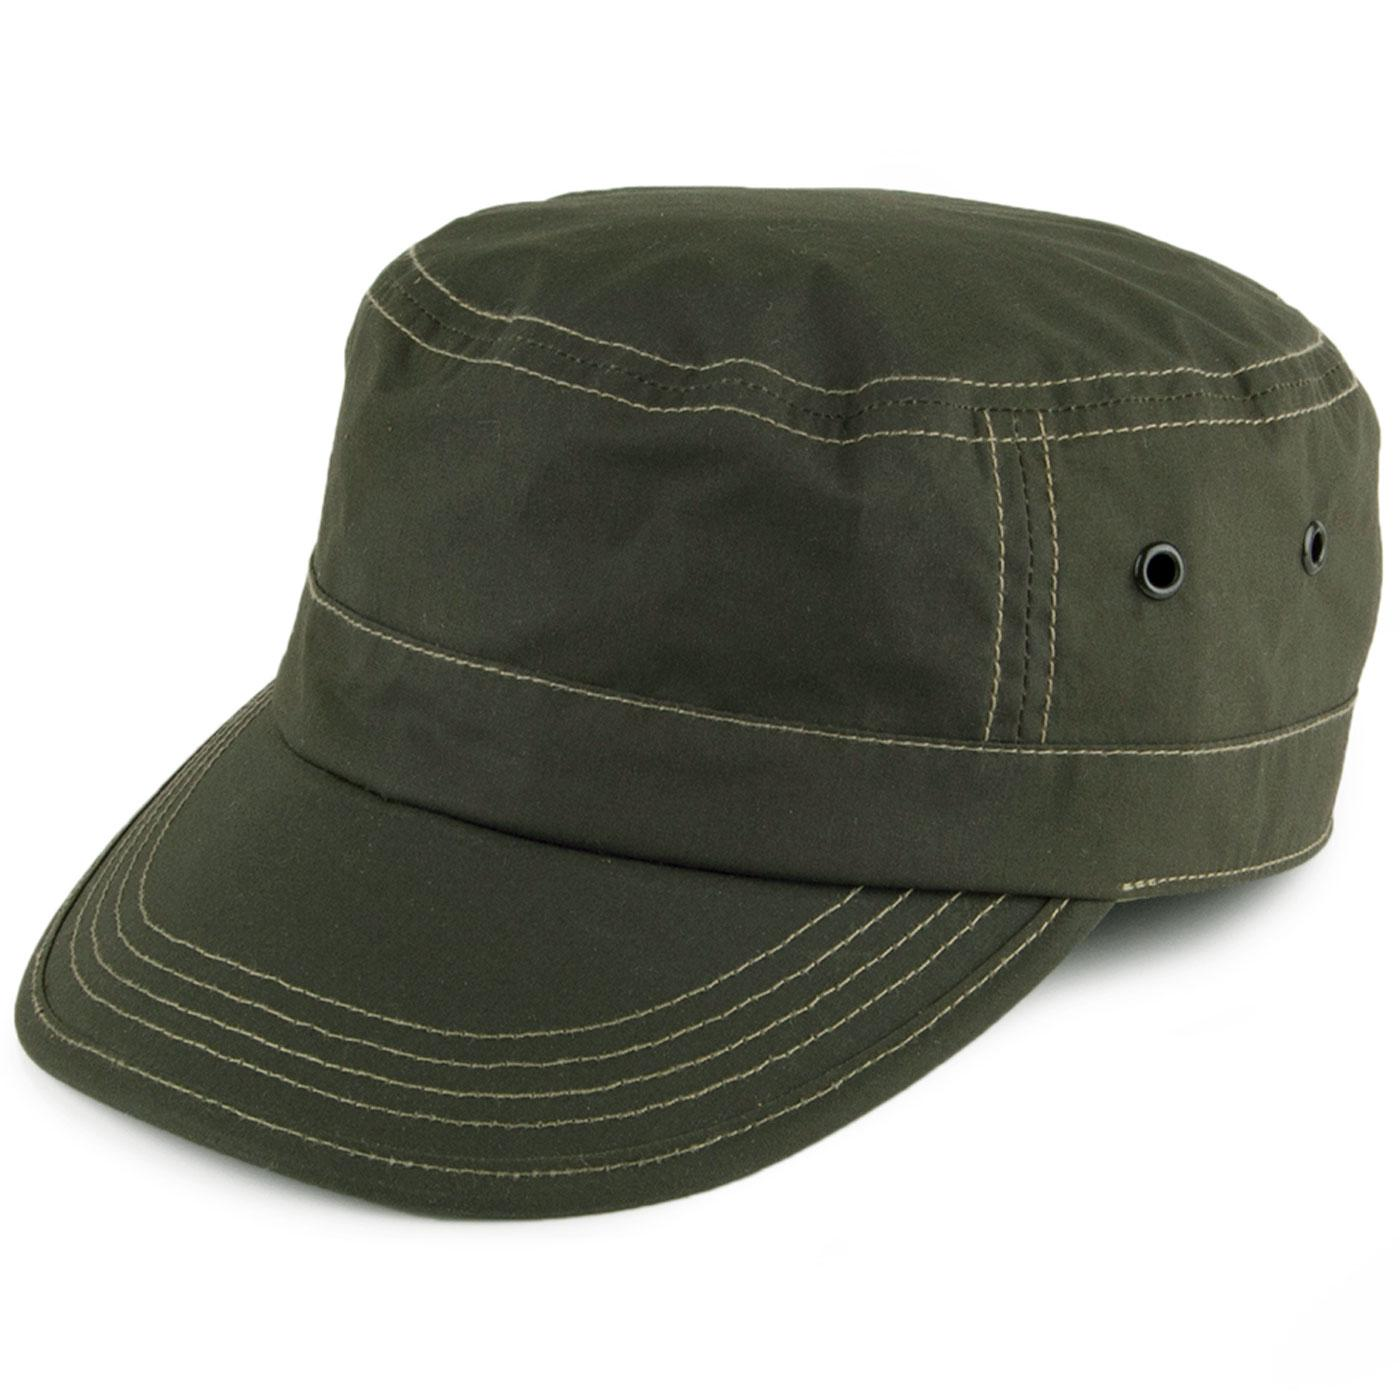 FAILSWORTH Military Dry Wax Train Driver Cap OLIVE